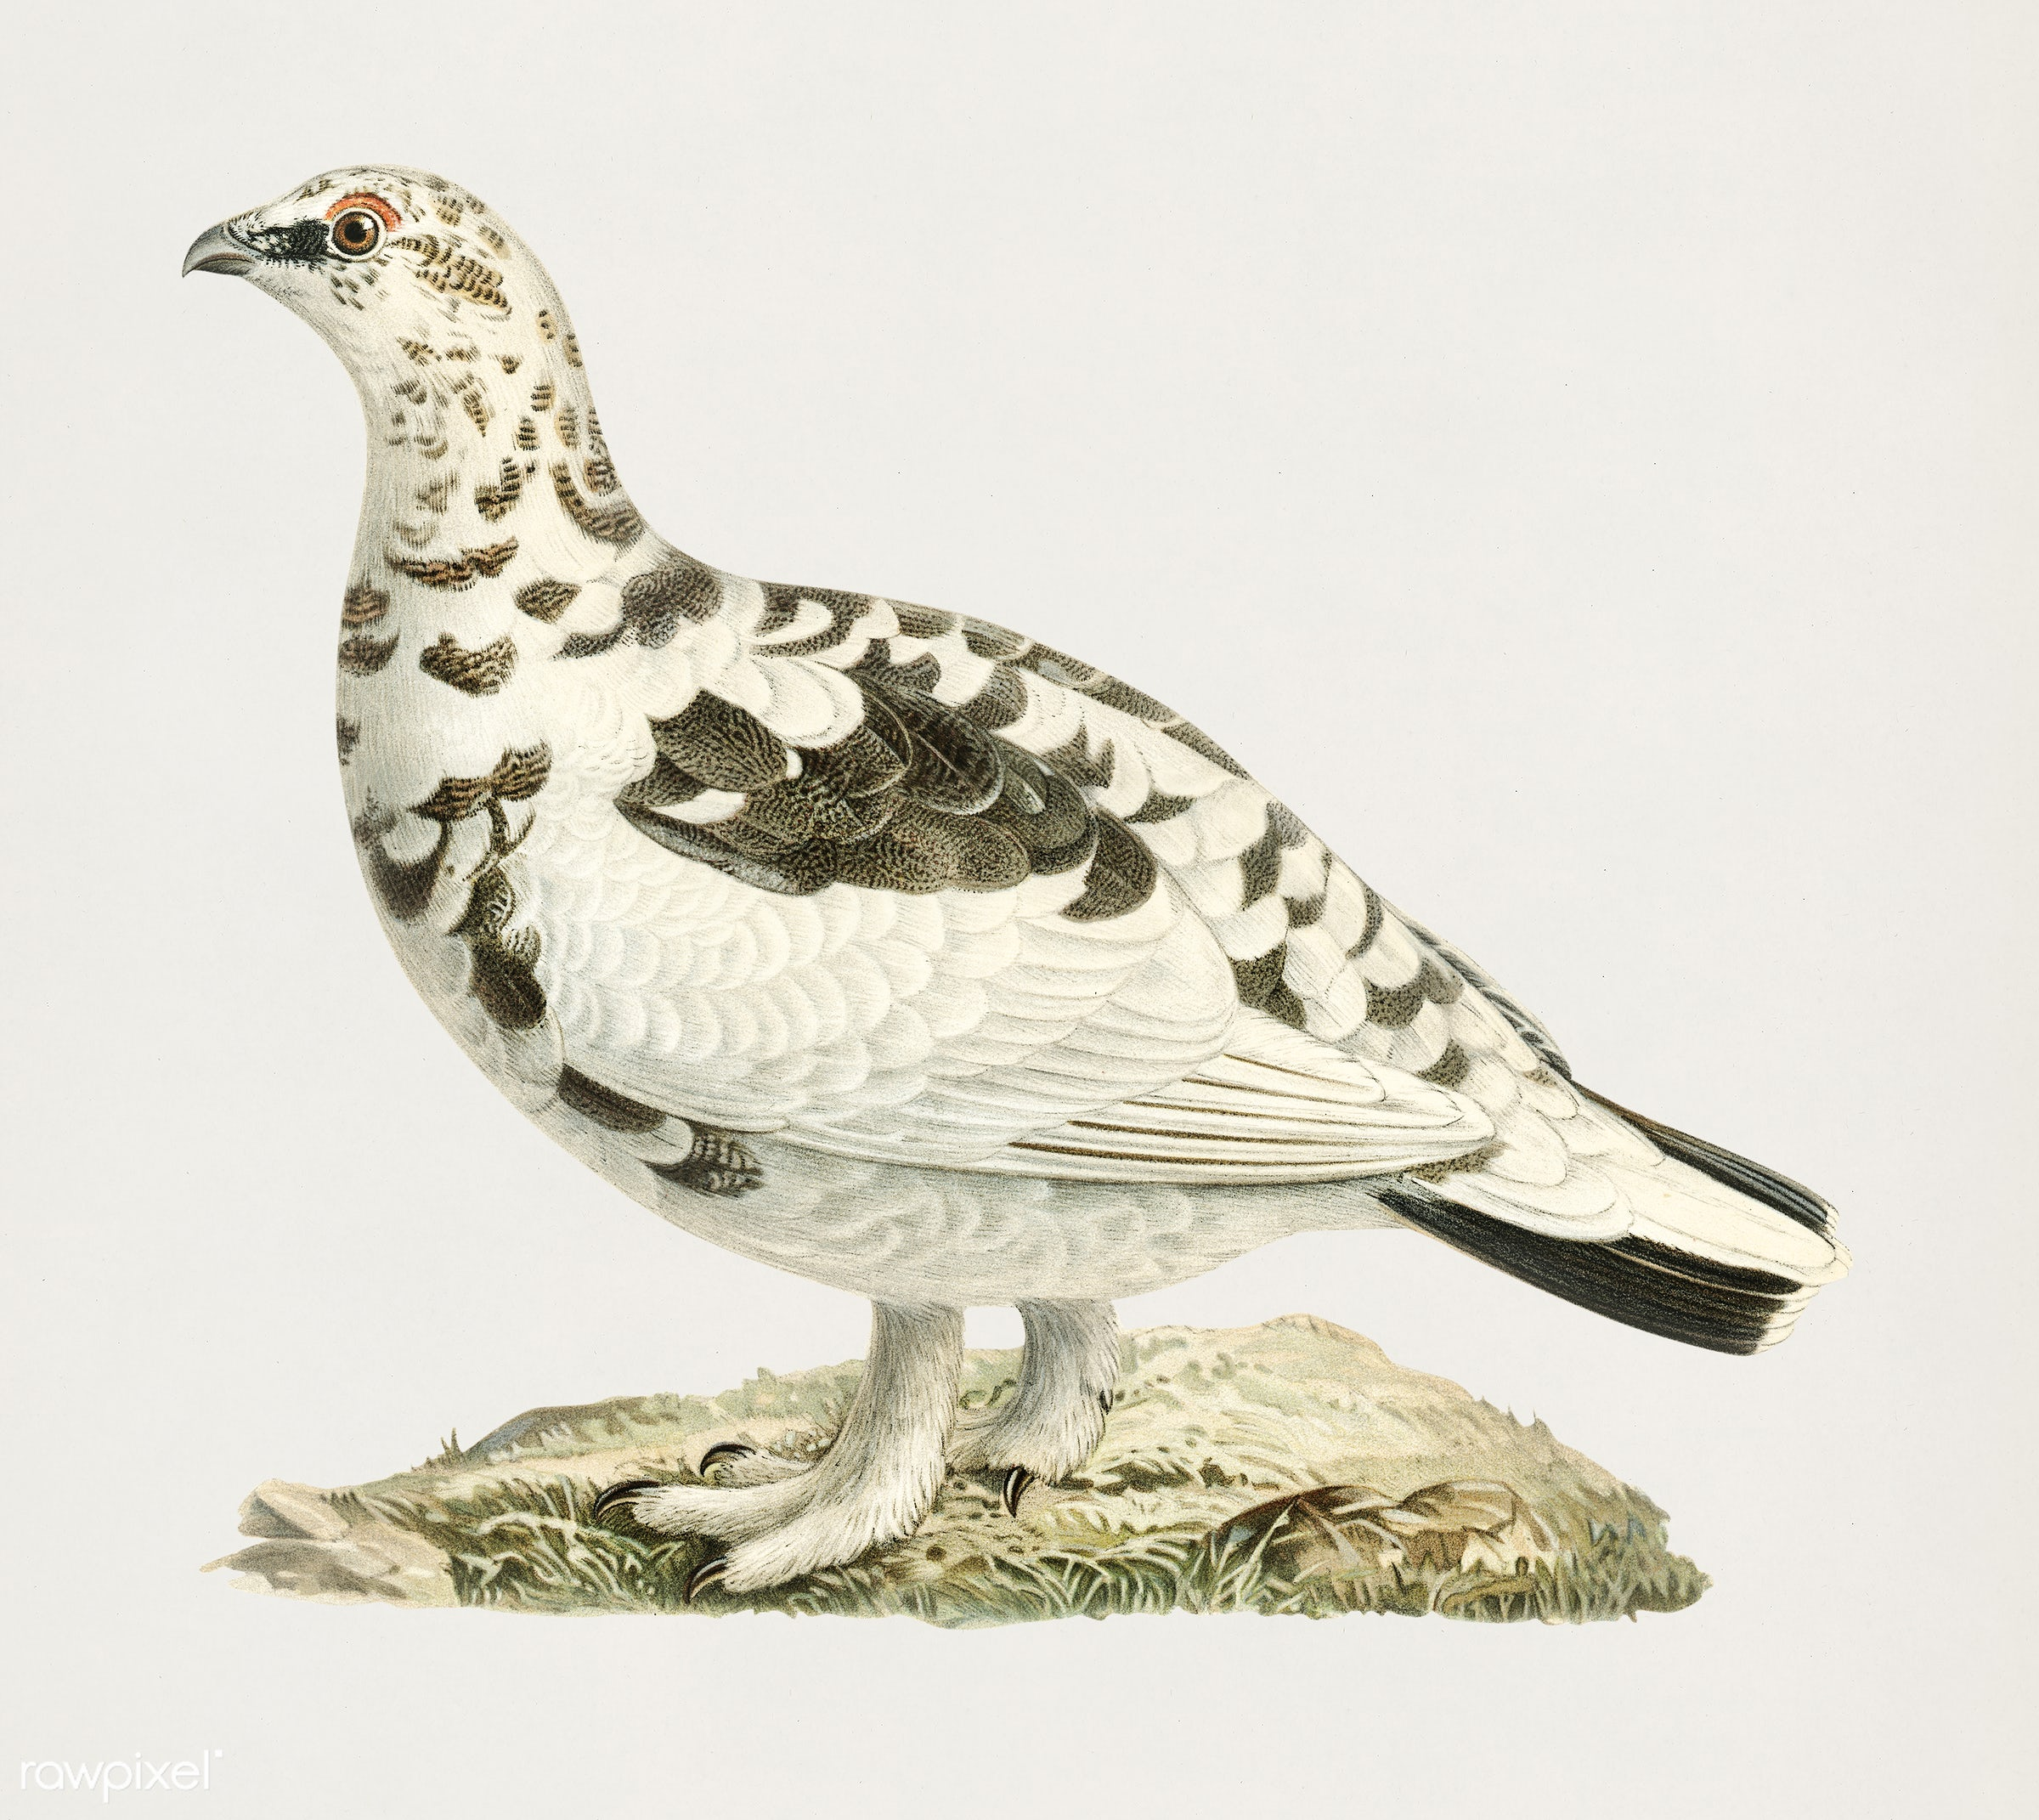 Rock ptarmigan (Lagopus mutus) illustrated by the von Wright brothers. Digitally enhanced from our own 1929 folio version of...